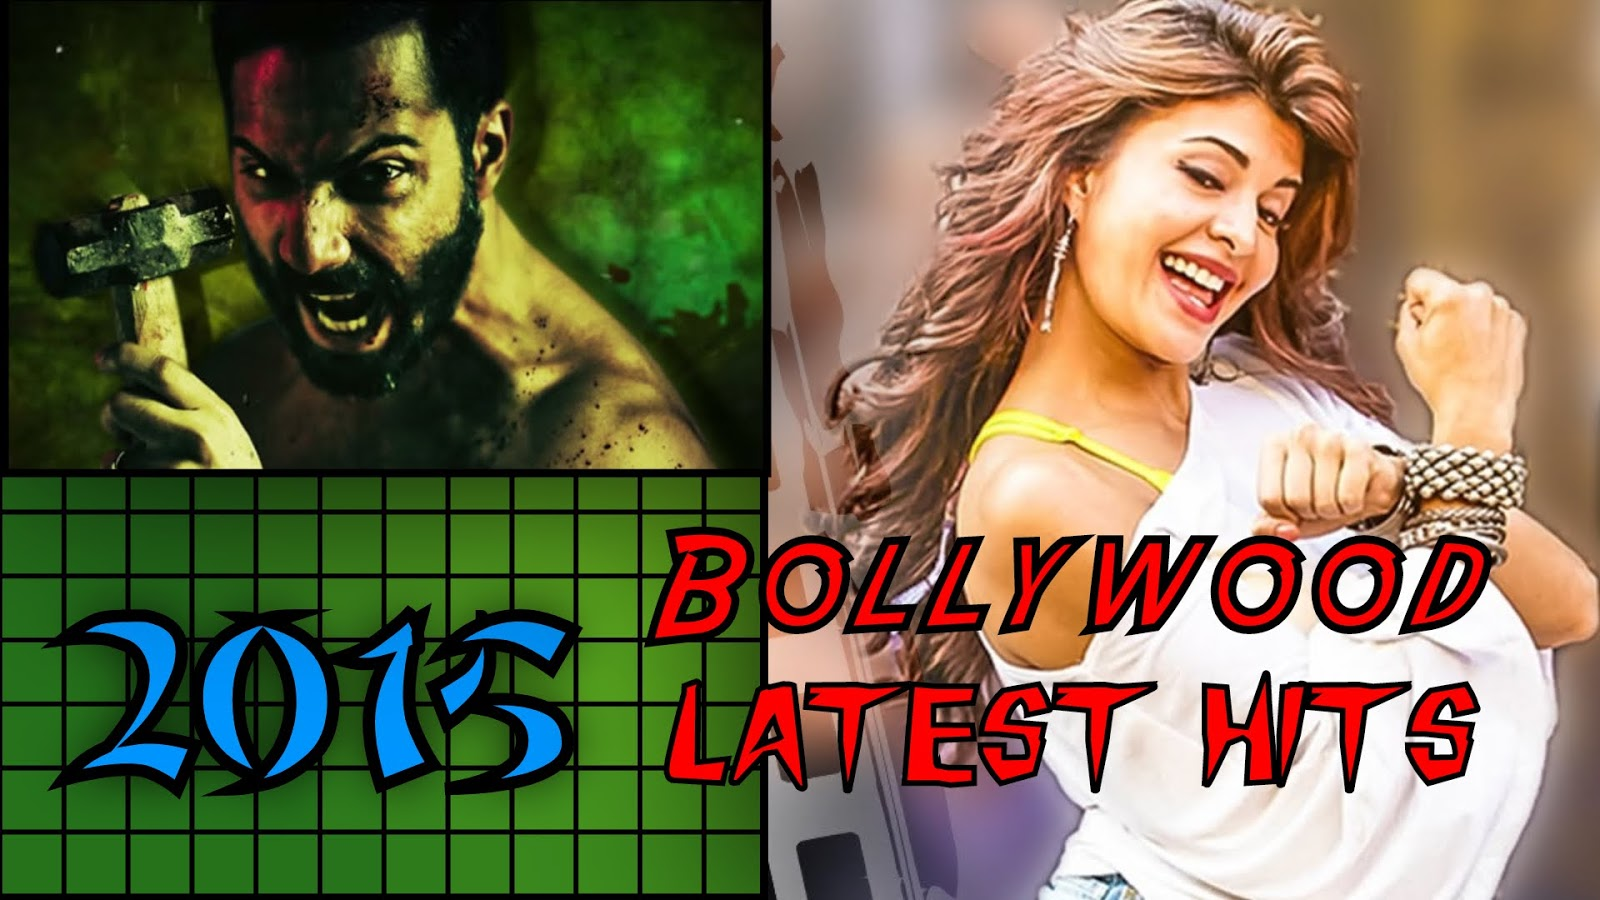 All Popular Bollywood Songs List in 2015